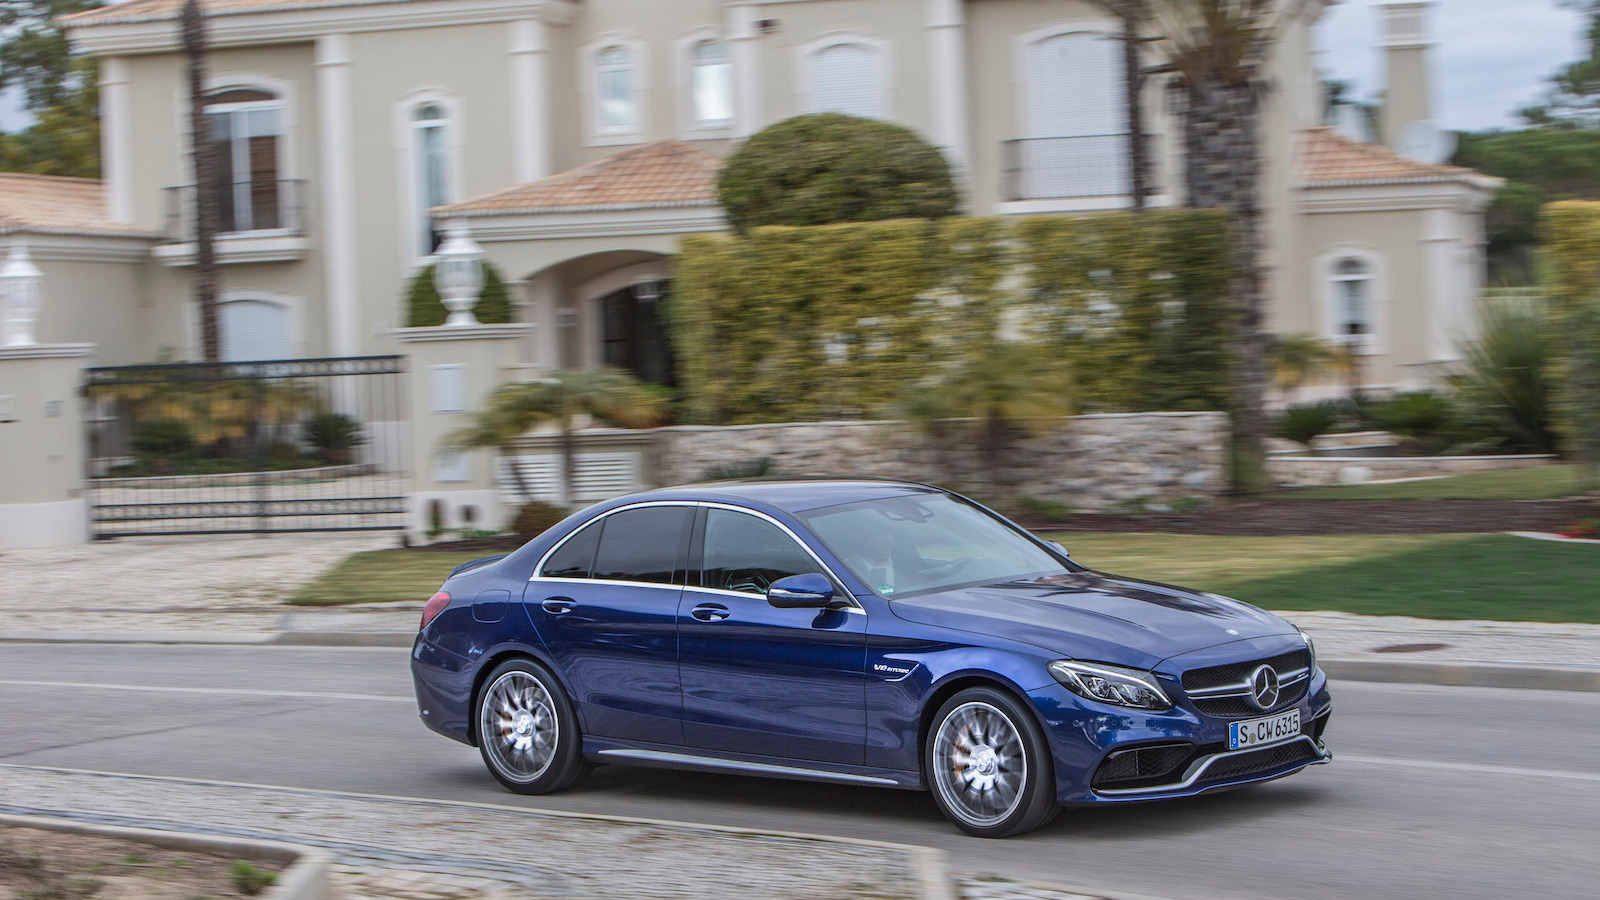 2015 Mercedes-AMG C63 S first drive, Portugal